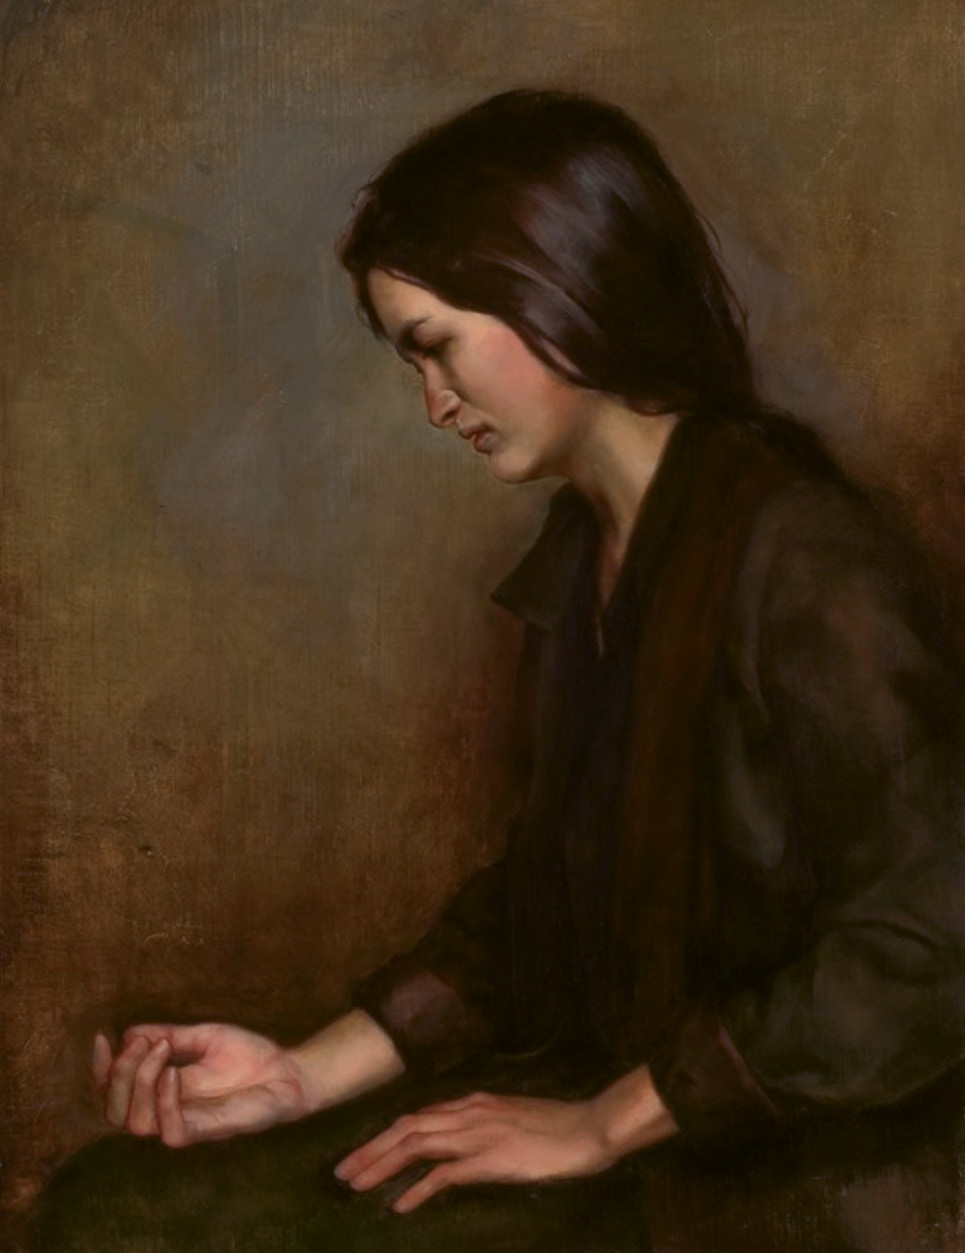 Hirona by Jill Hooper (oil on linen on panel, 32 x 24 inches, 2009)